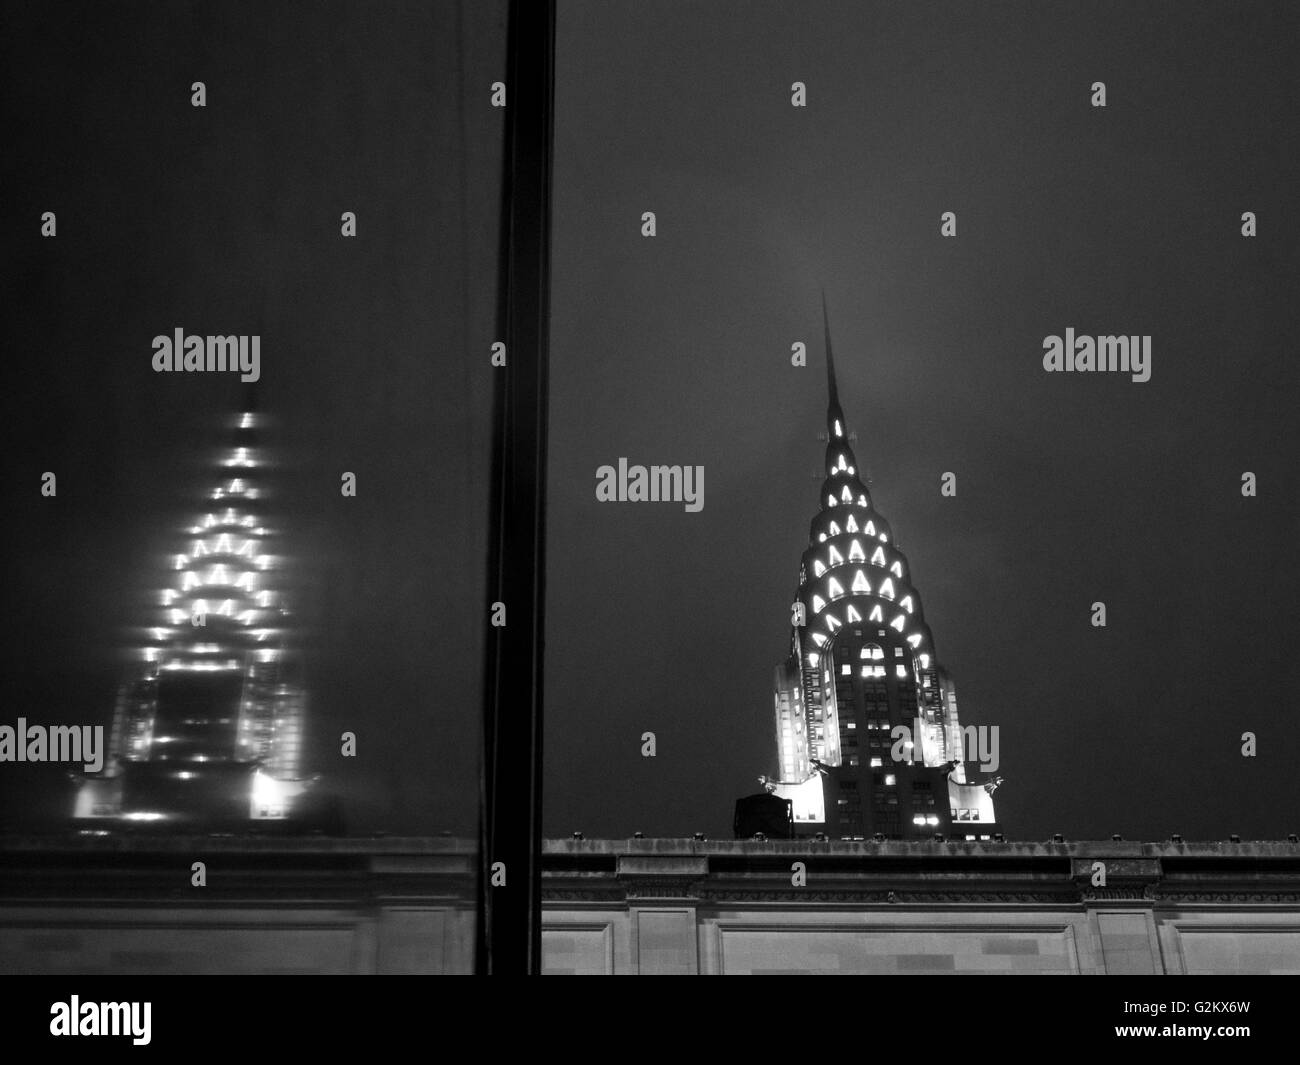 Chrysler Building and Reflection in Store Window, New York City, USA - Stock Image